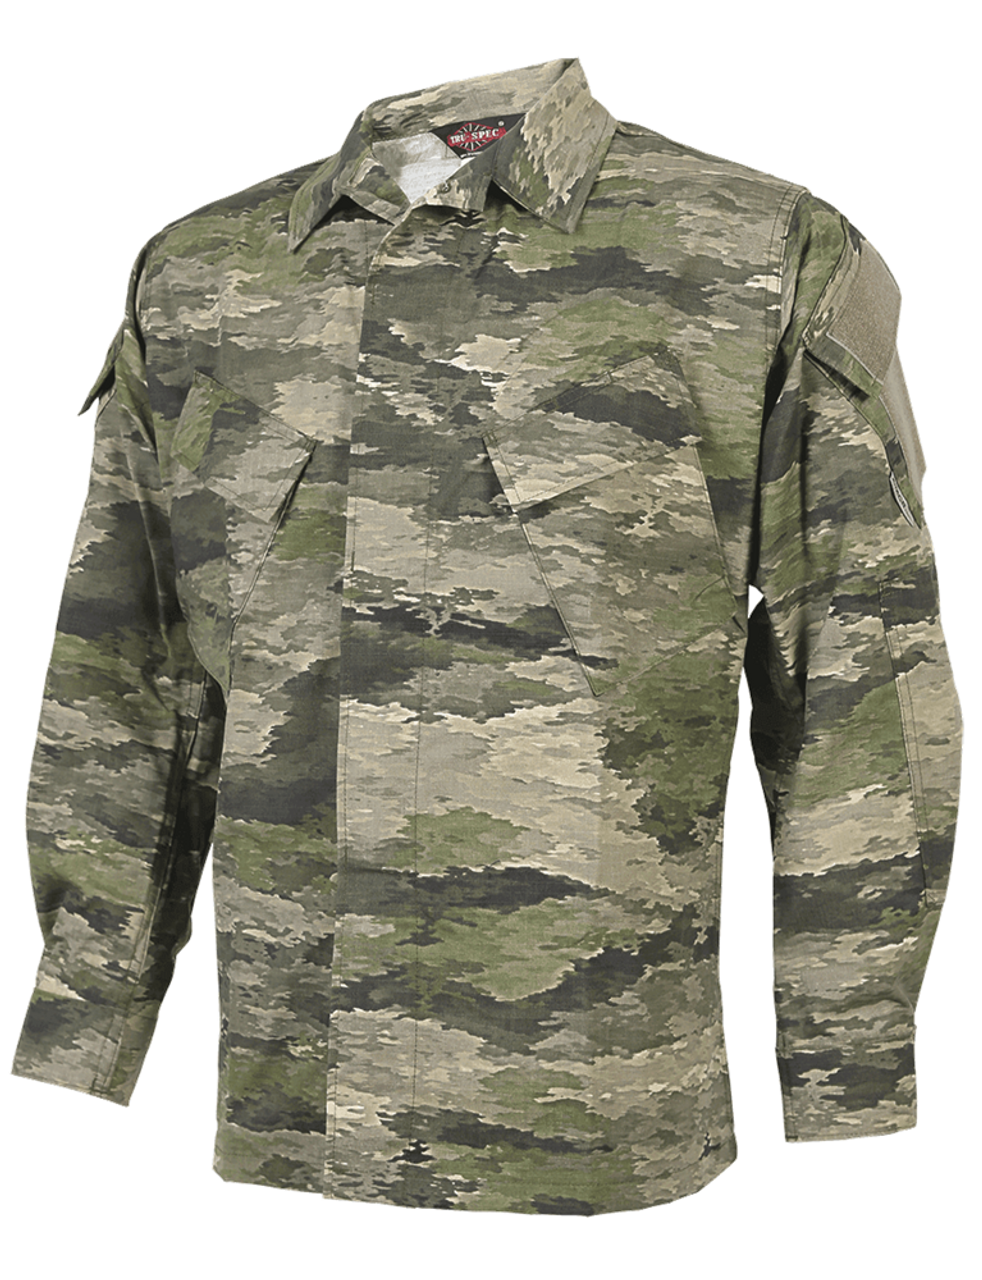 BDU XTREME SHIRT - A-TACS IX from Hessen Tactical